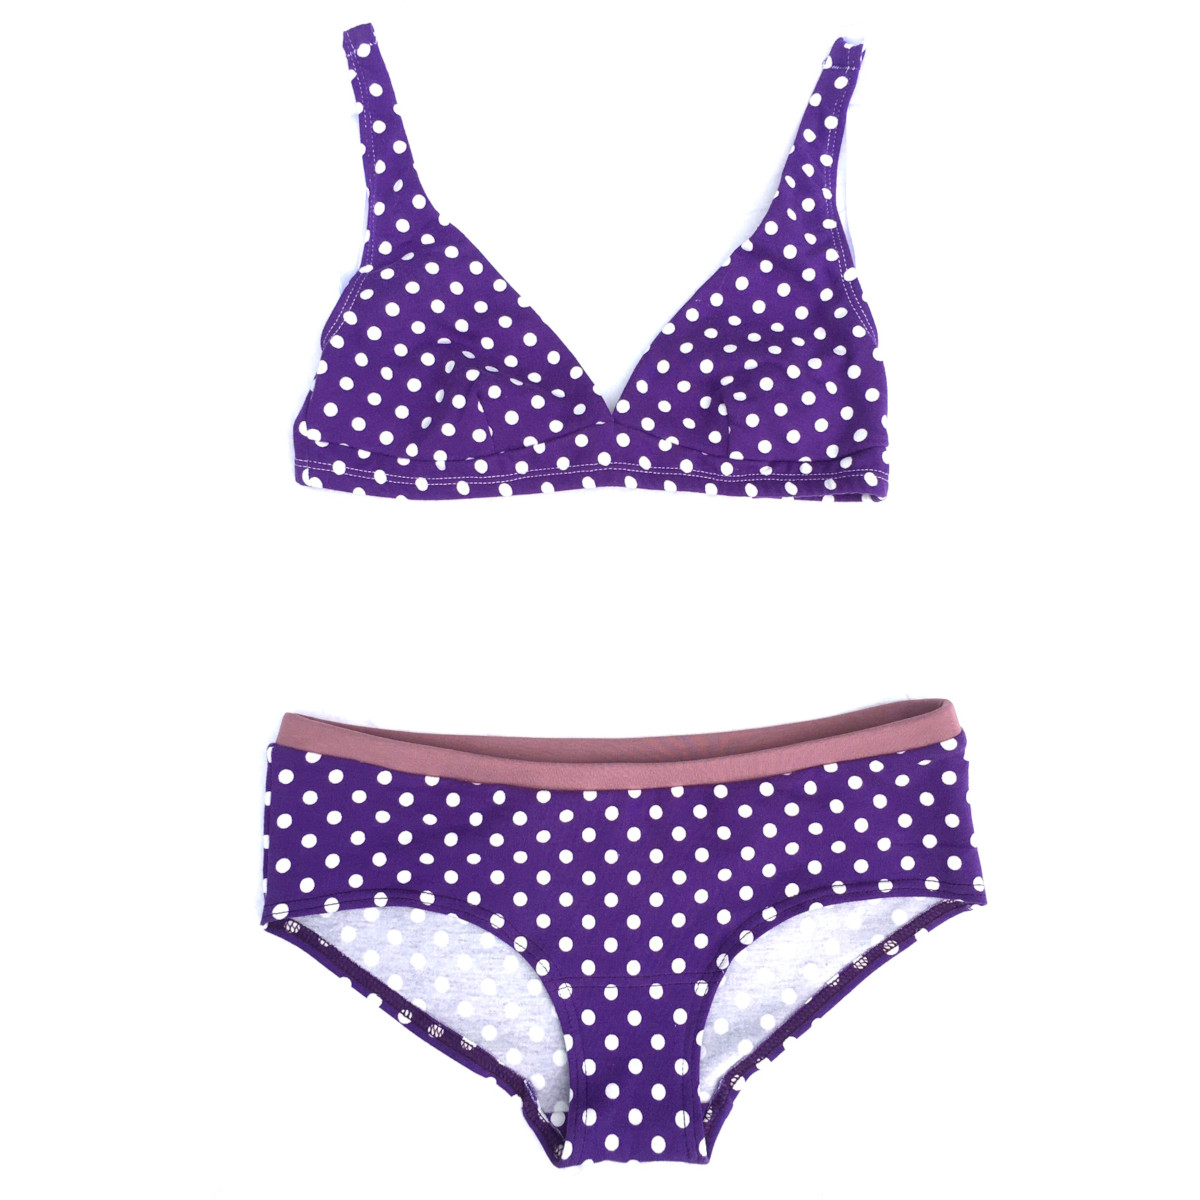 Completo Colorio Organics Purple Dots in cotone biologico Limited Edition